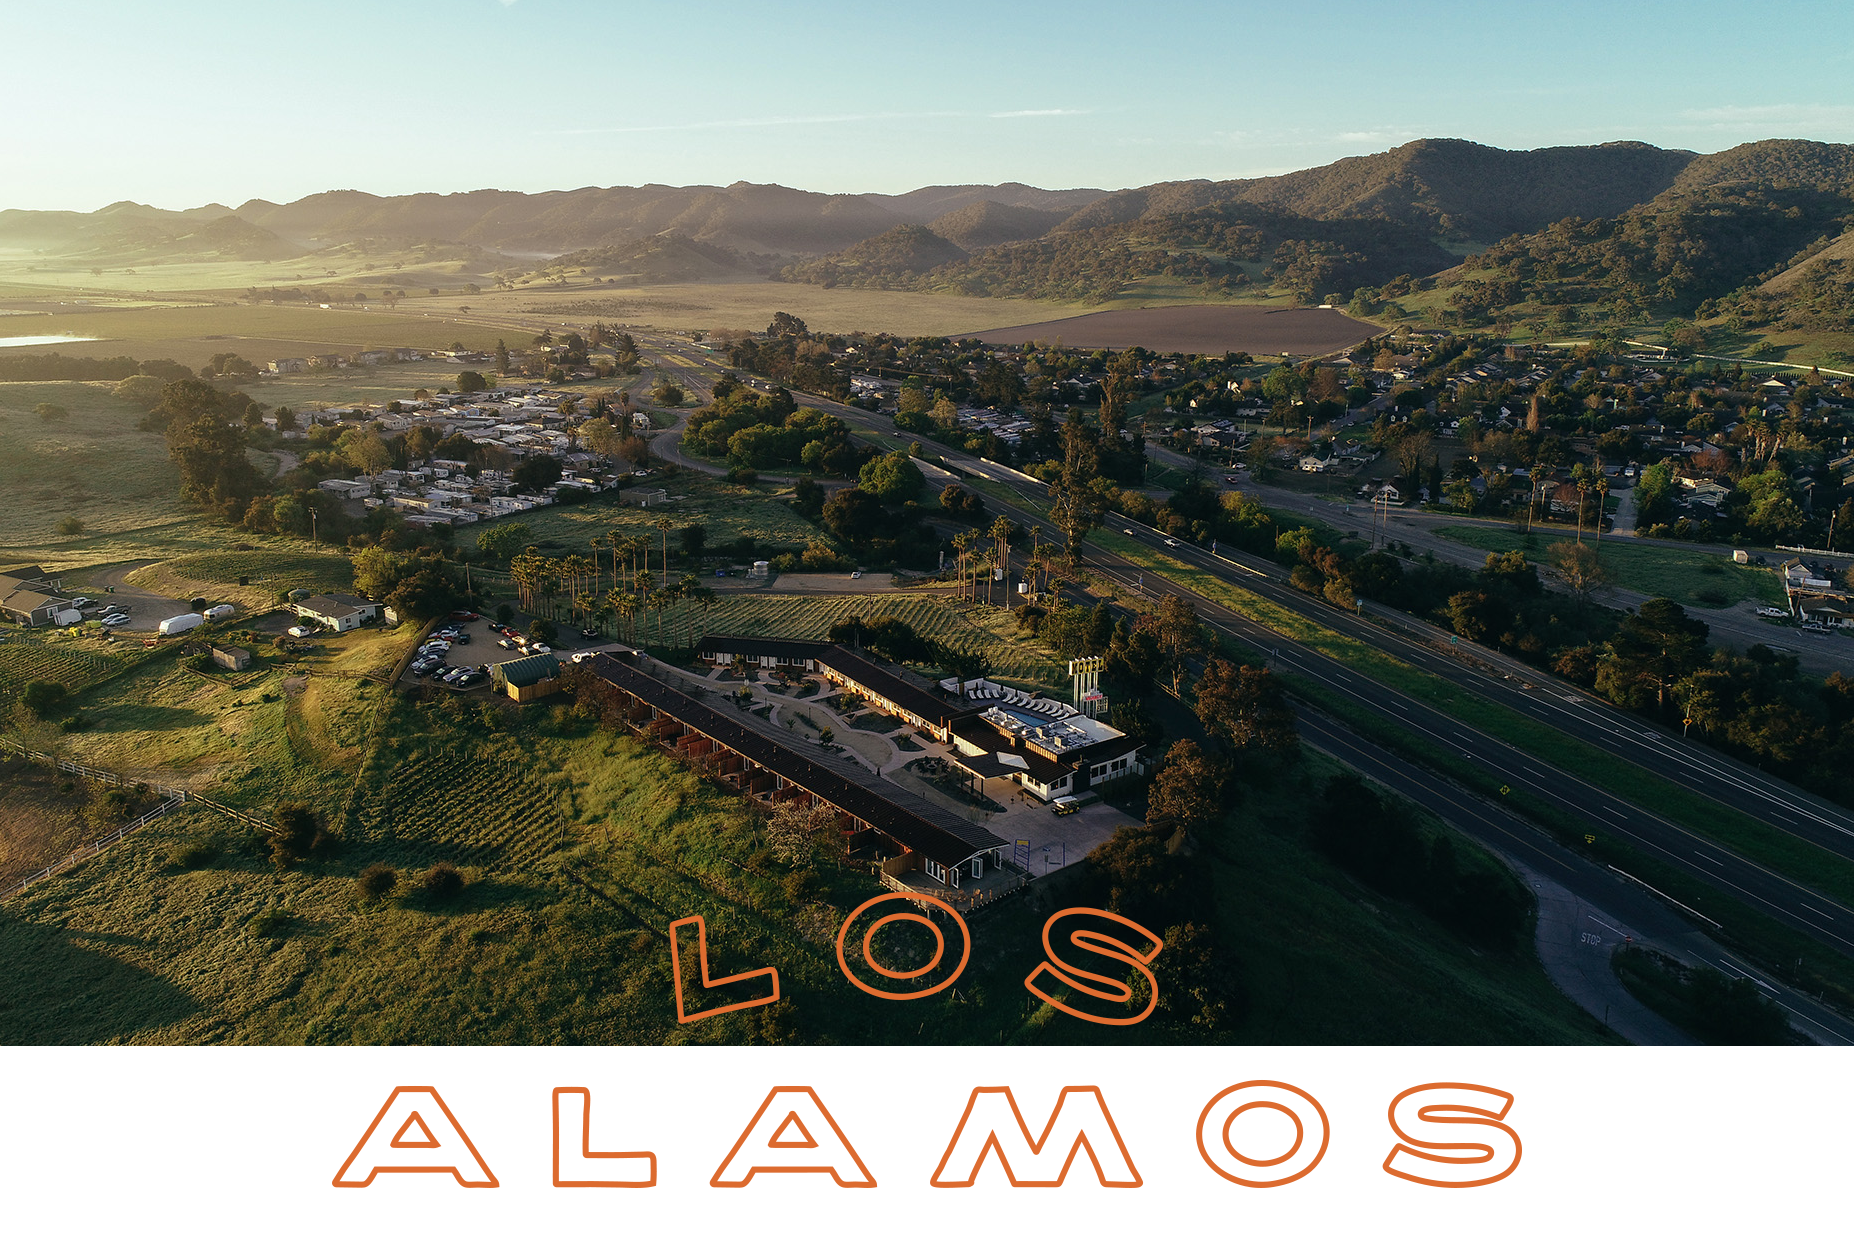 -How To Los Alamos- - This is a very special town. Filled with loads of history, charm, incredible food, wine, and most of all some of the best neighbors in the world. Yes, we said it. We have some of the best neighbors in the world and we'd like to introduce you to a few of them.